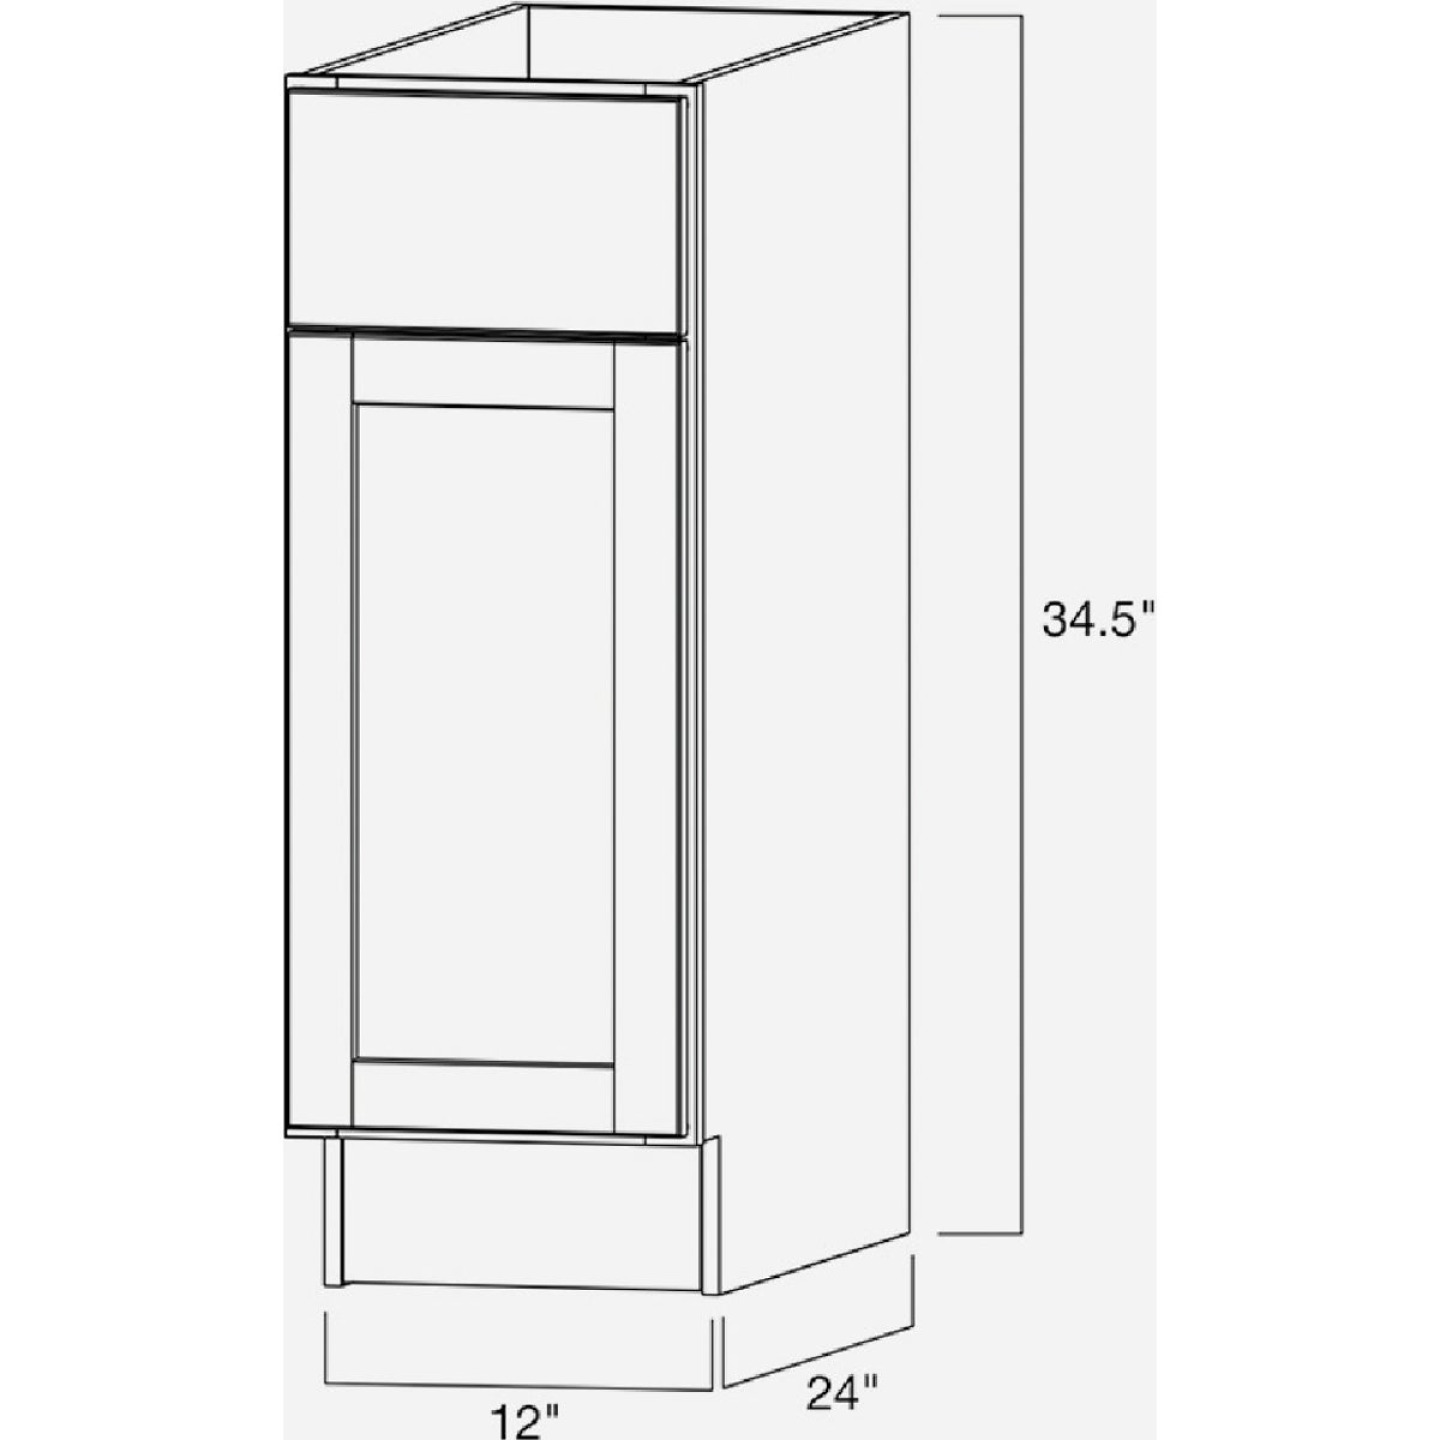 Continental Cabinets Andover Shaker 12 In. W x 34 In. H x 24 In. D White Thermofoil Base Kitchen Cabinet Image 4